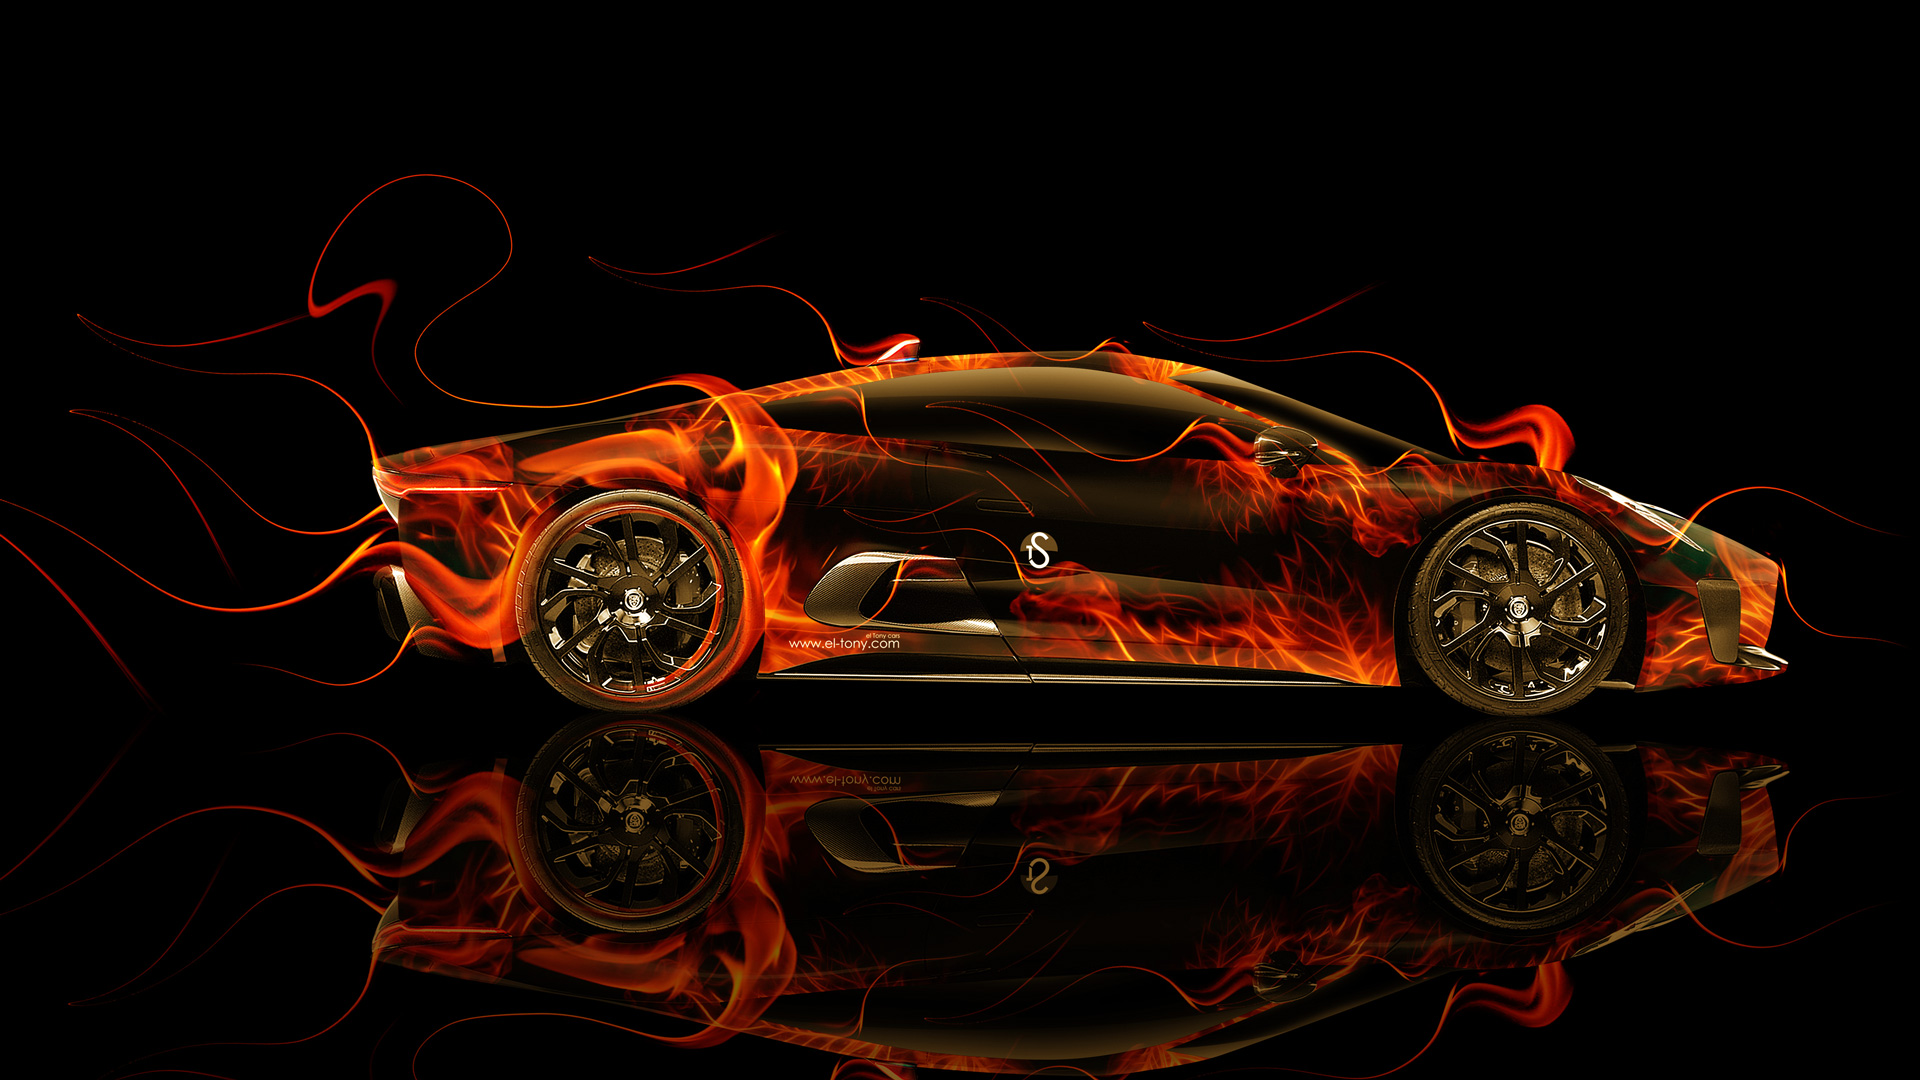 Jaguar CX 75 Side Fire Abstract Car 2014